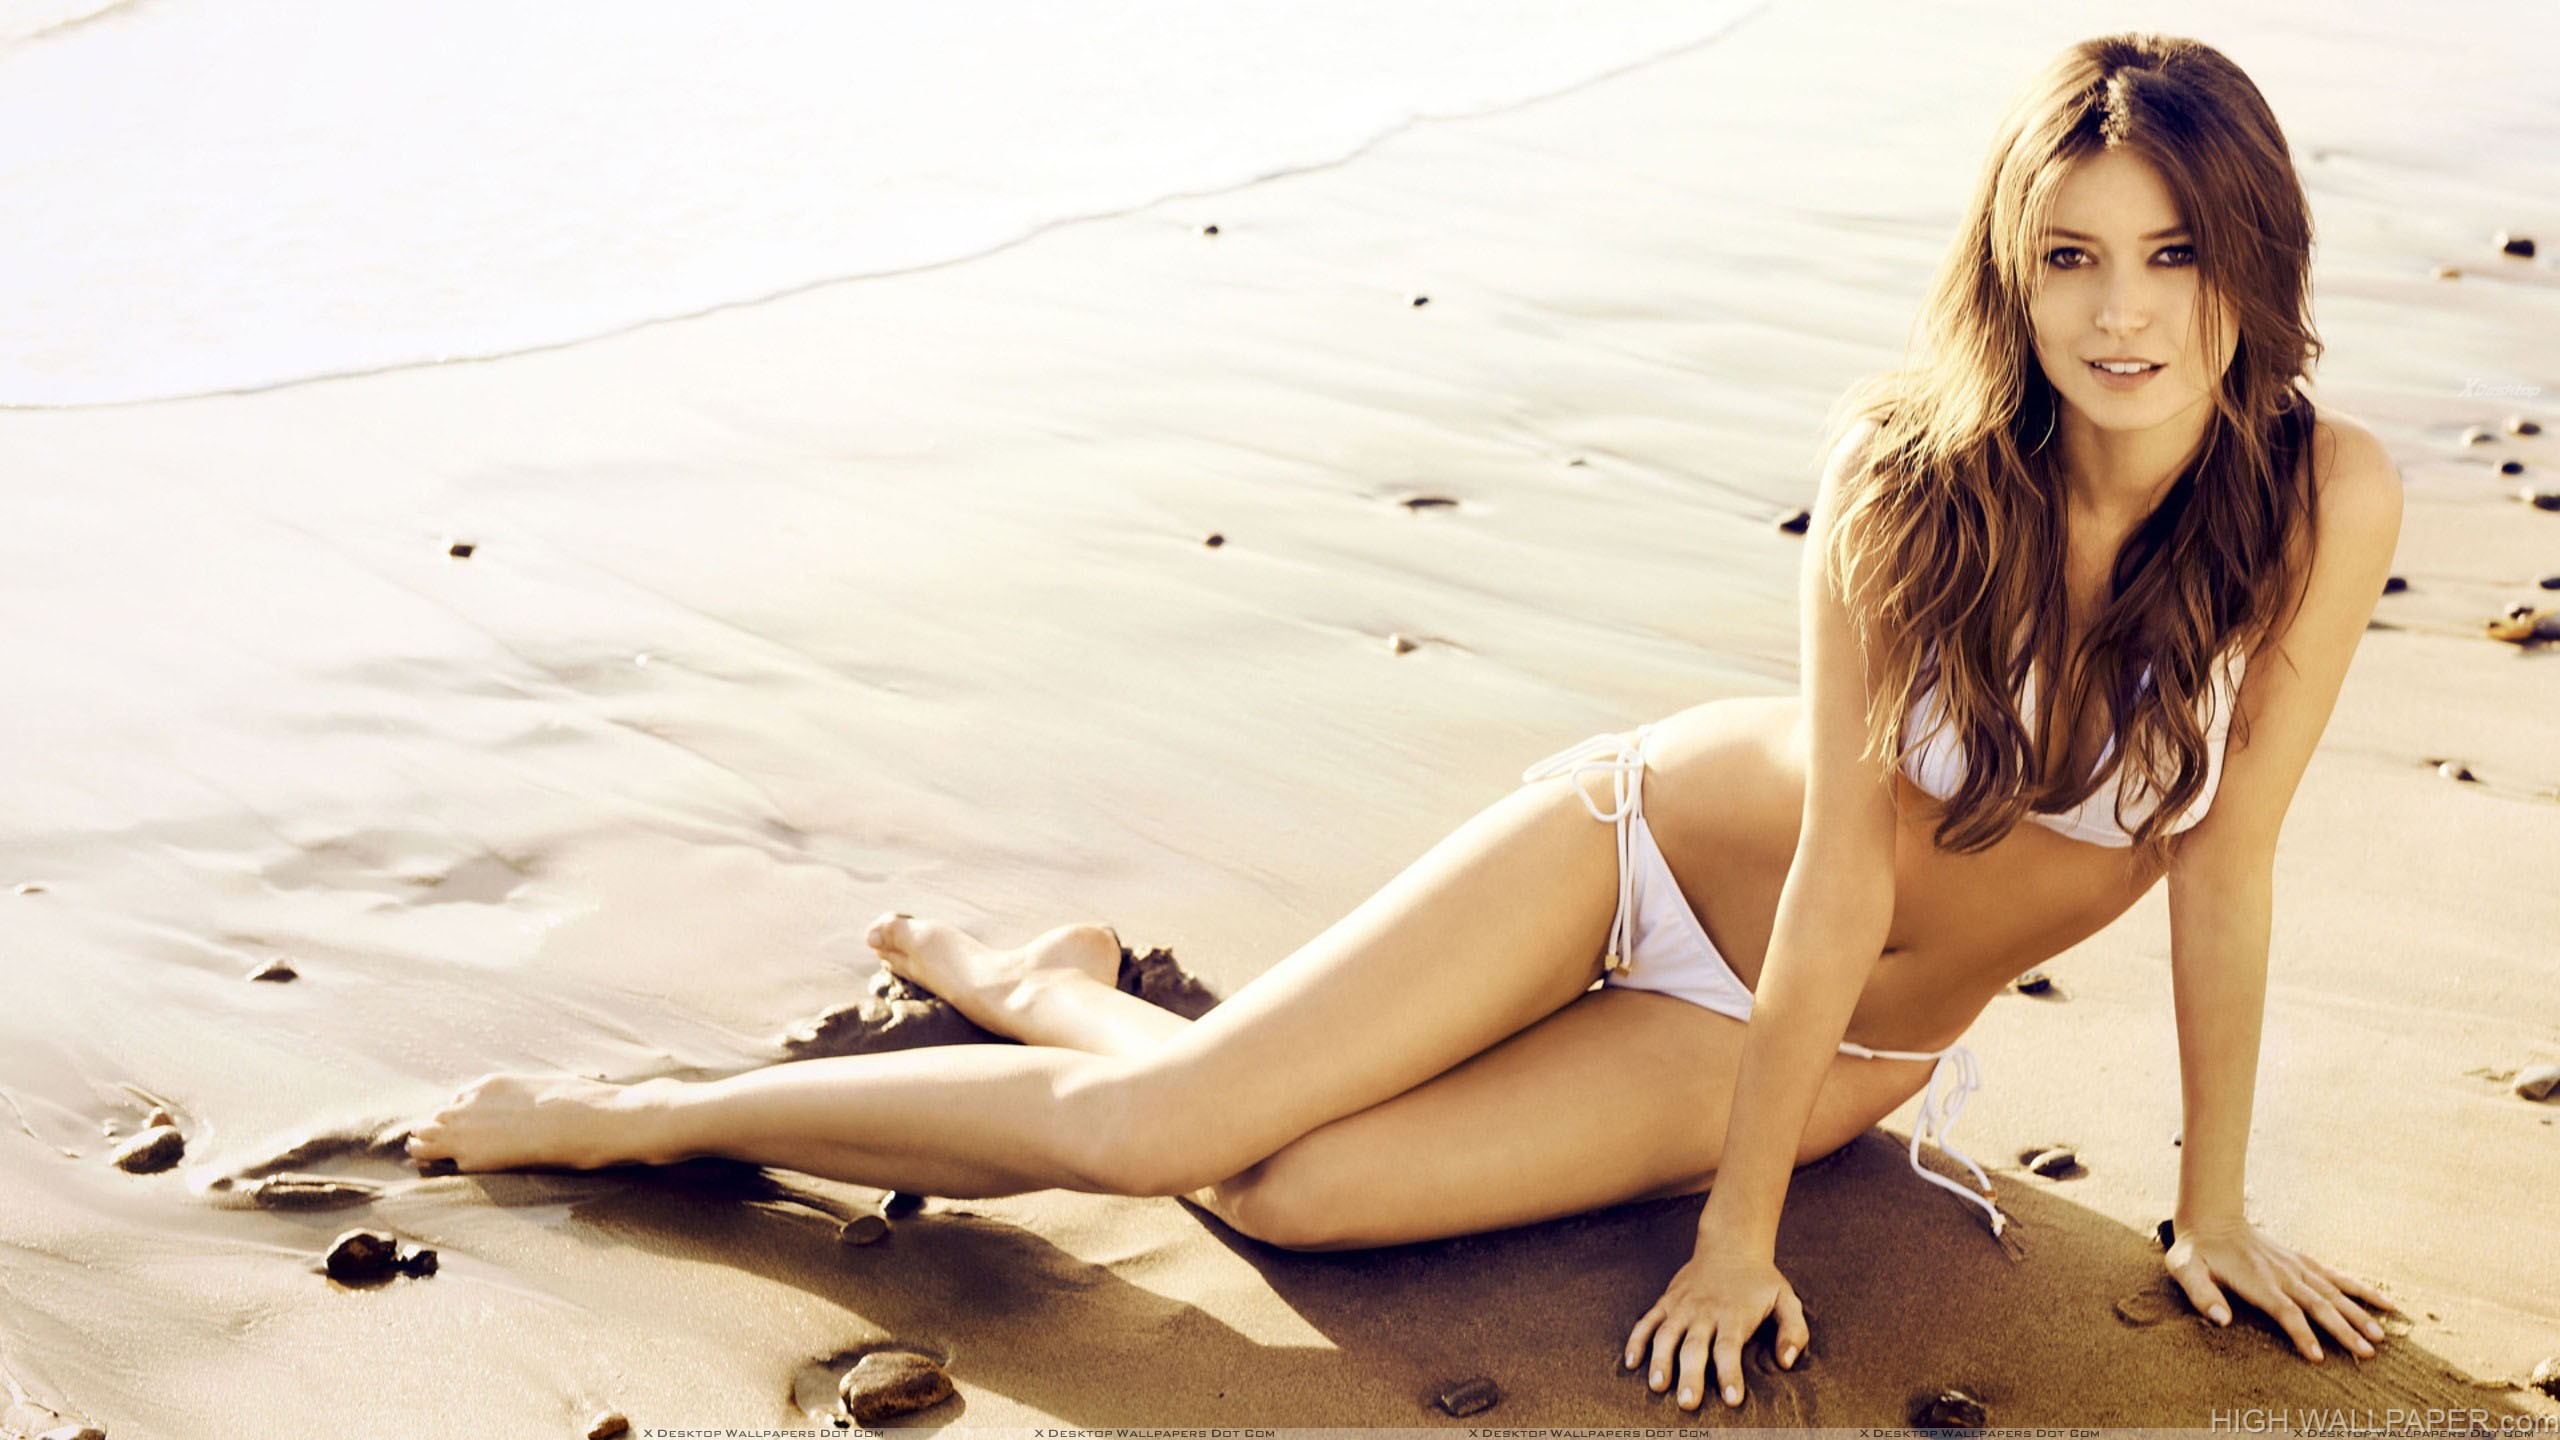 Summer Glau In White Bikini Laying On The Wet Sand